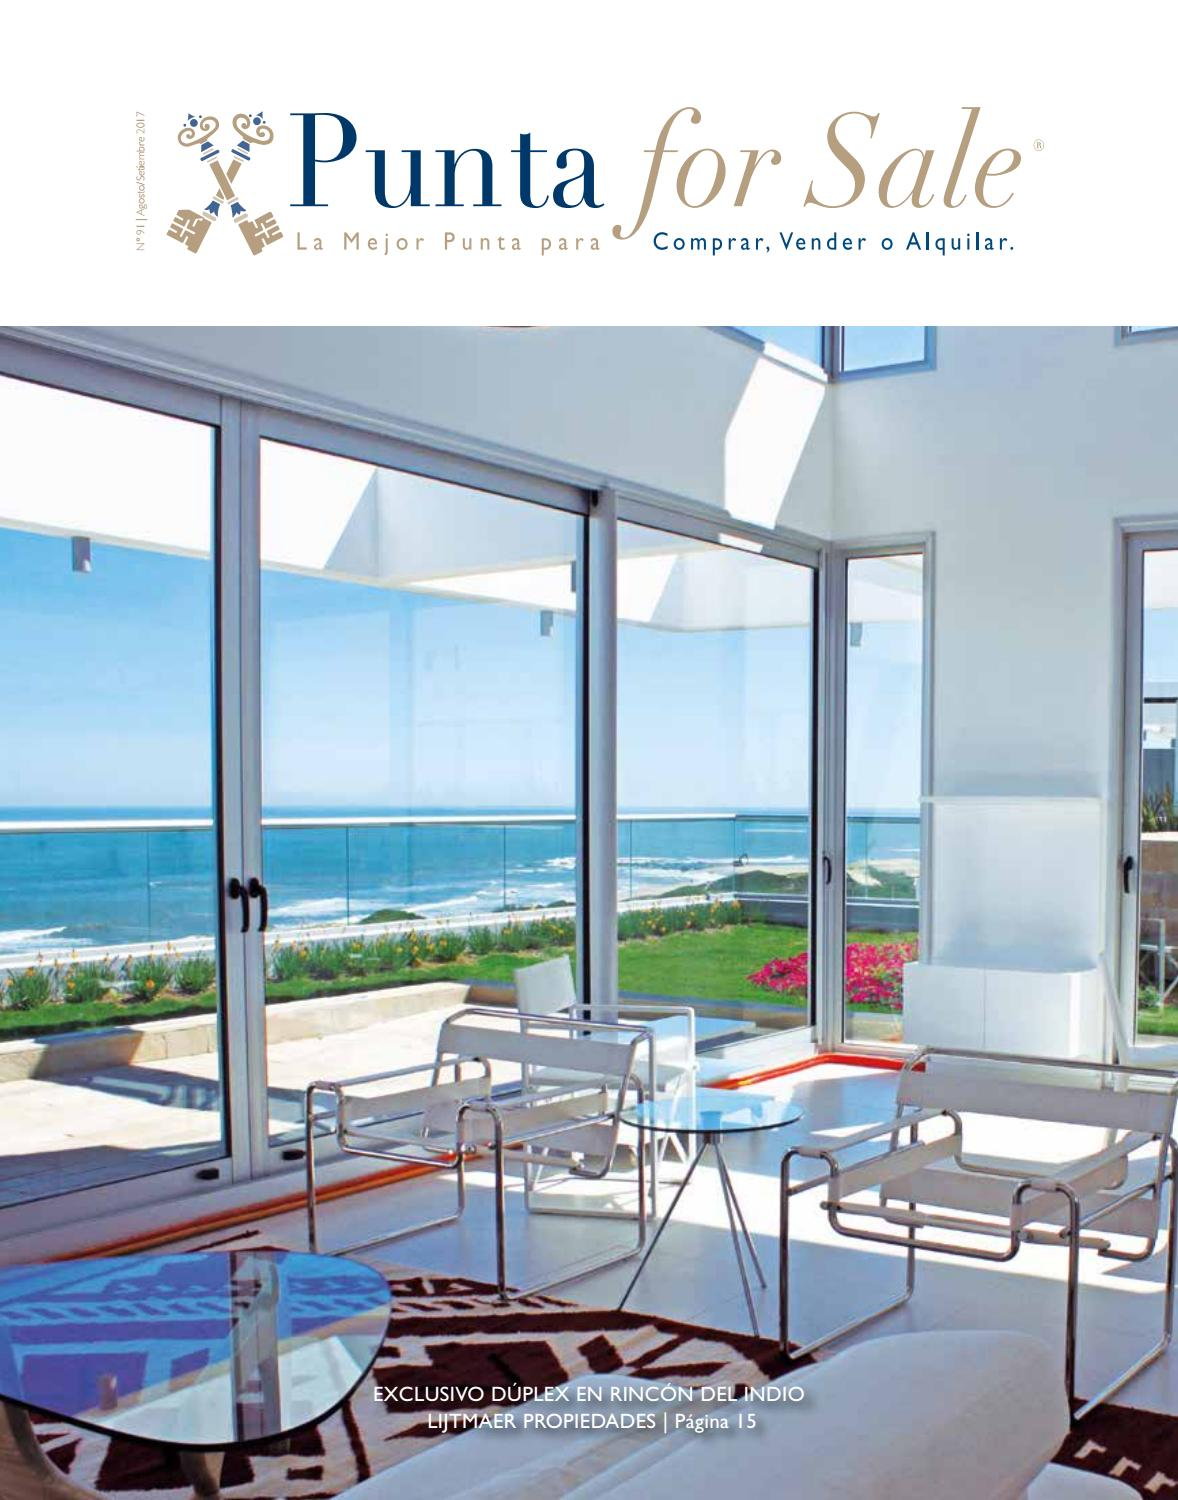 Revista de Real Estate Punta For Sale, edición #91 Agosto - Setiembre 2017